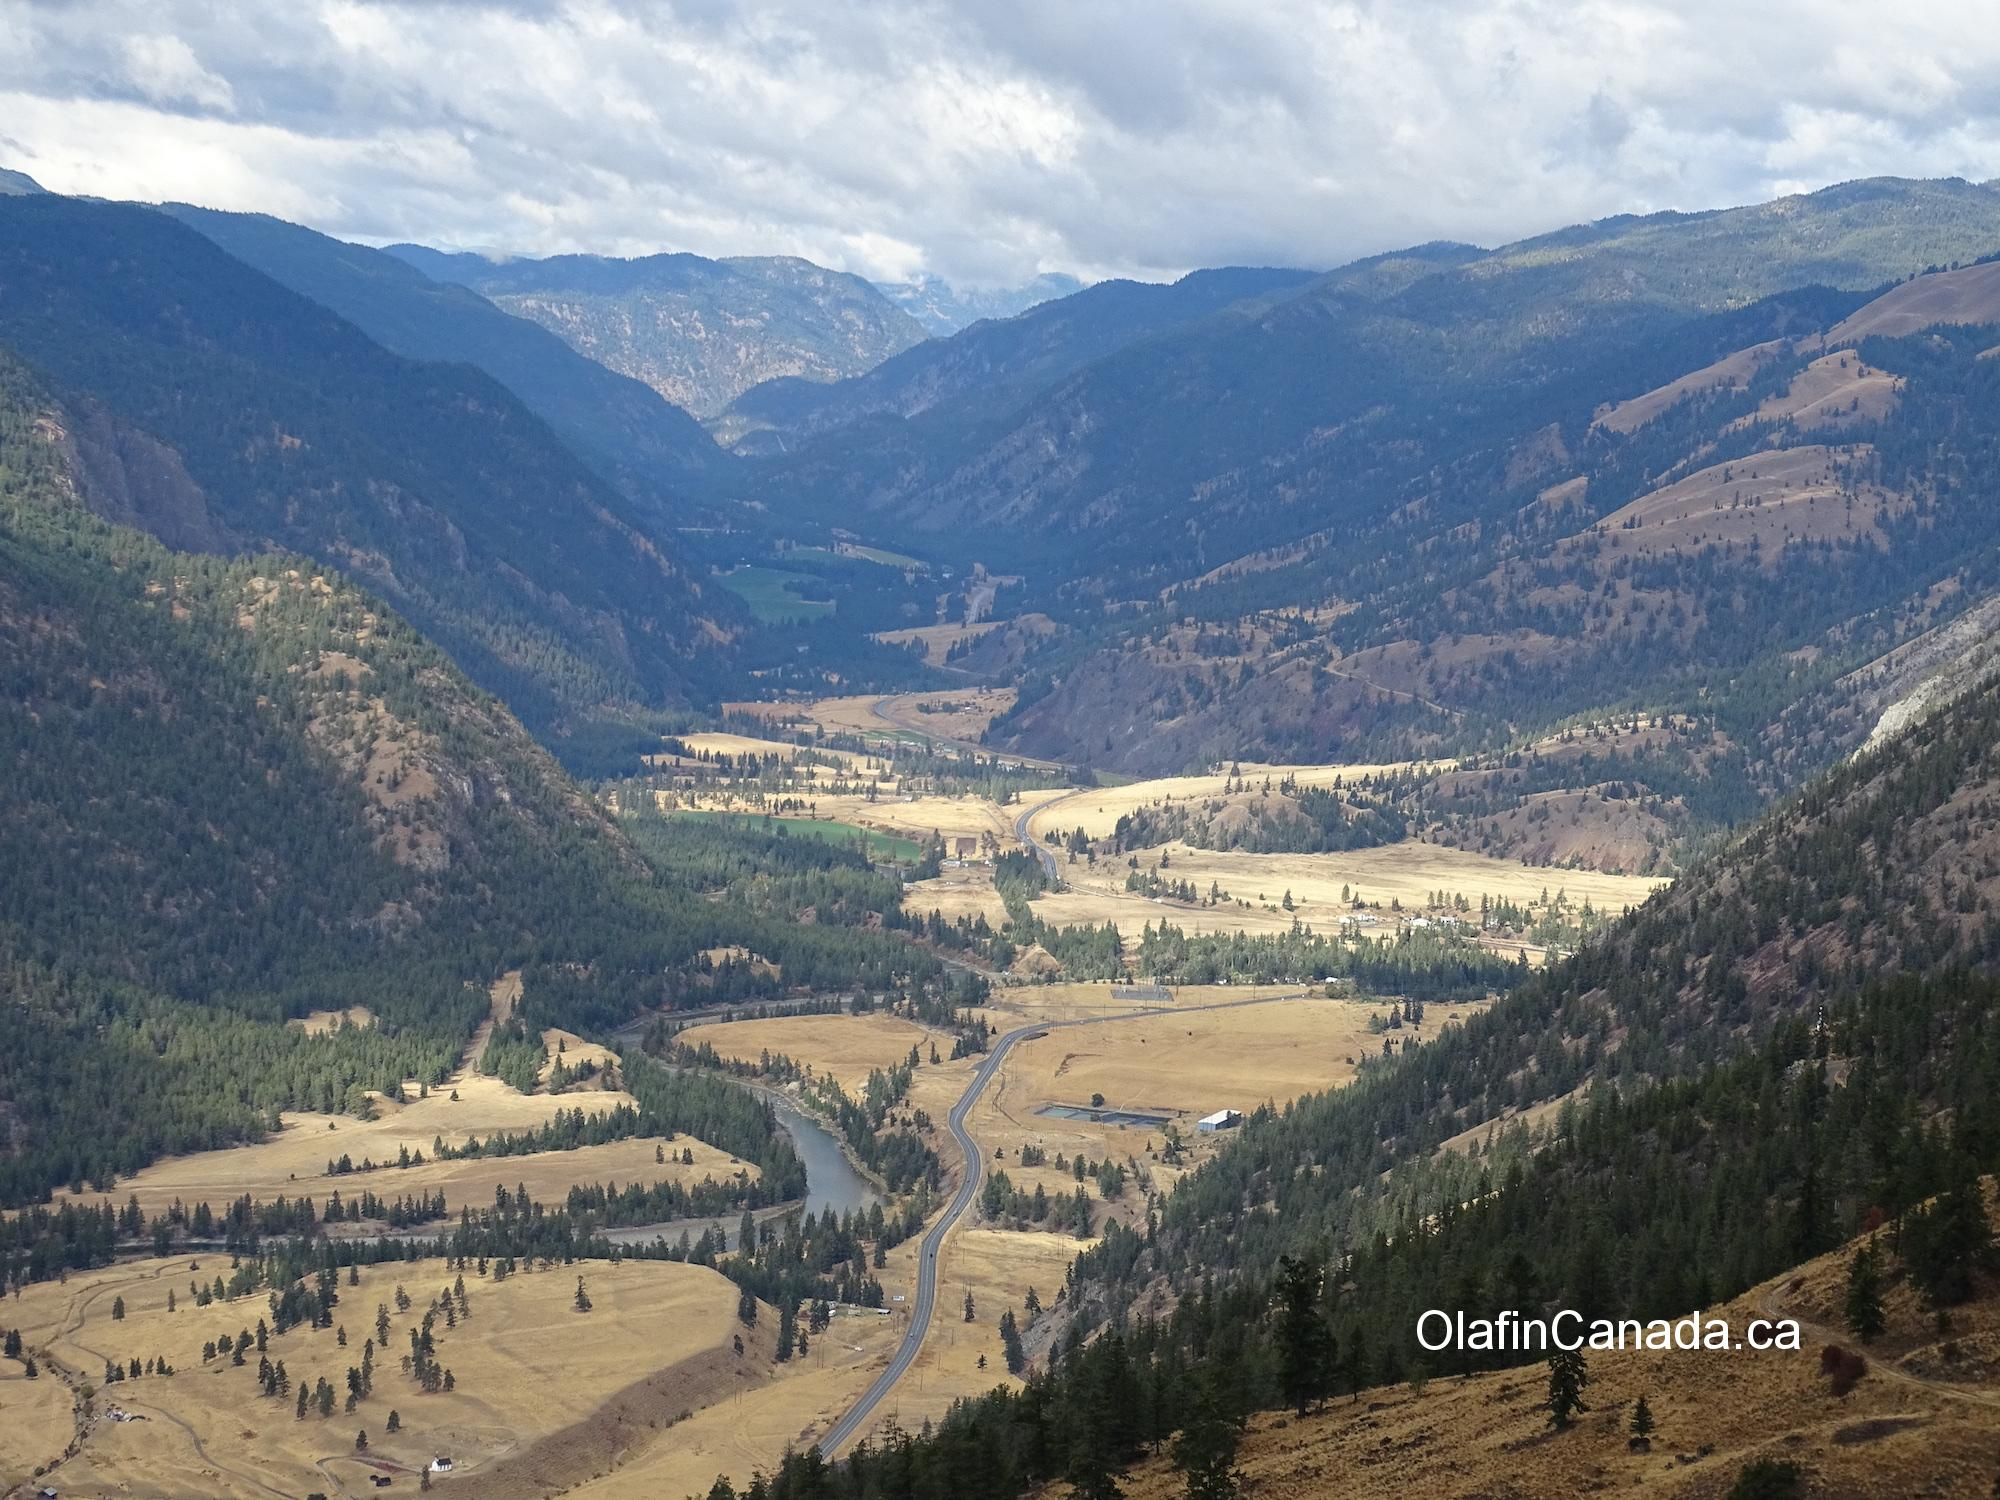 Hedley valley seen from the entrance of the French Mines #olafincanada #britishcolumbia #discoverbc #hedley #valleyview